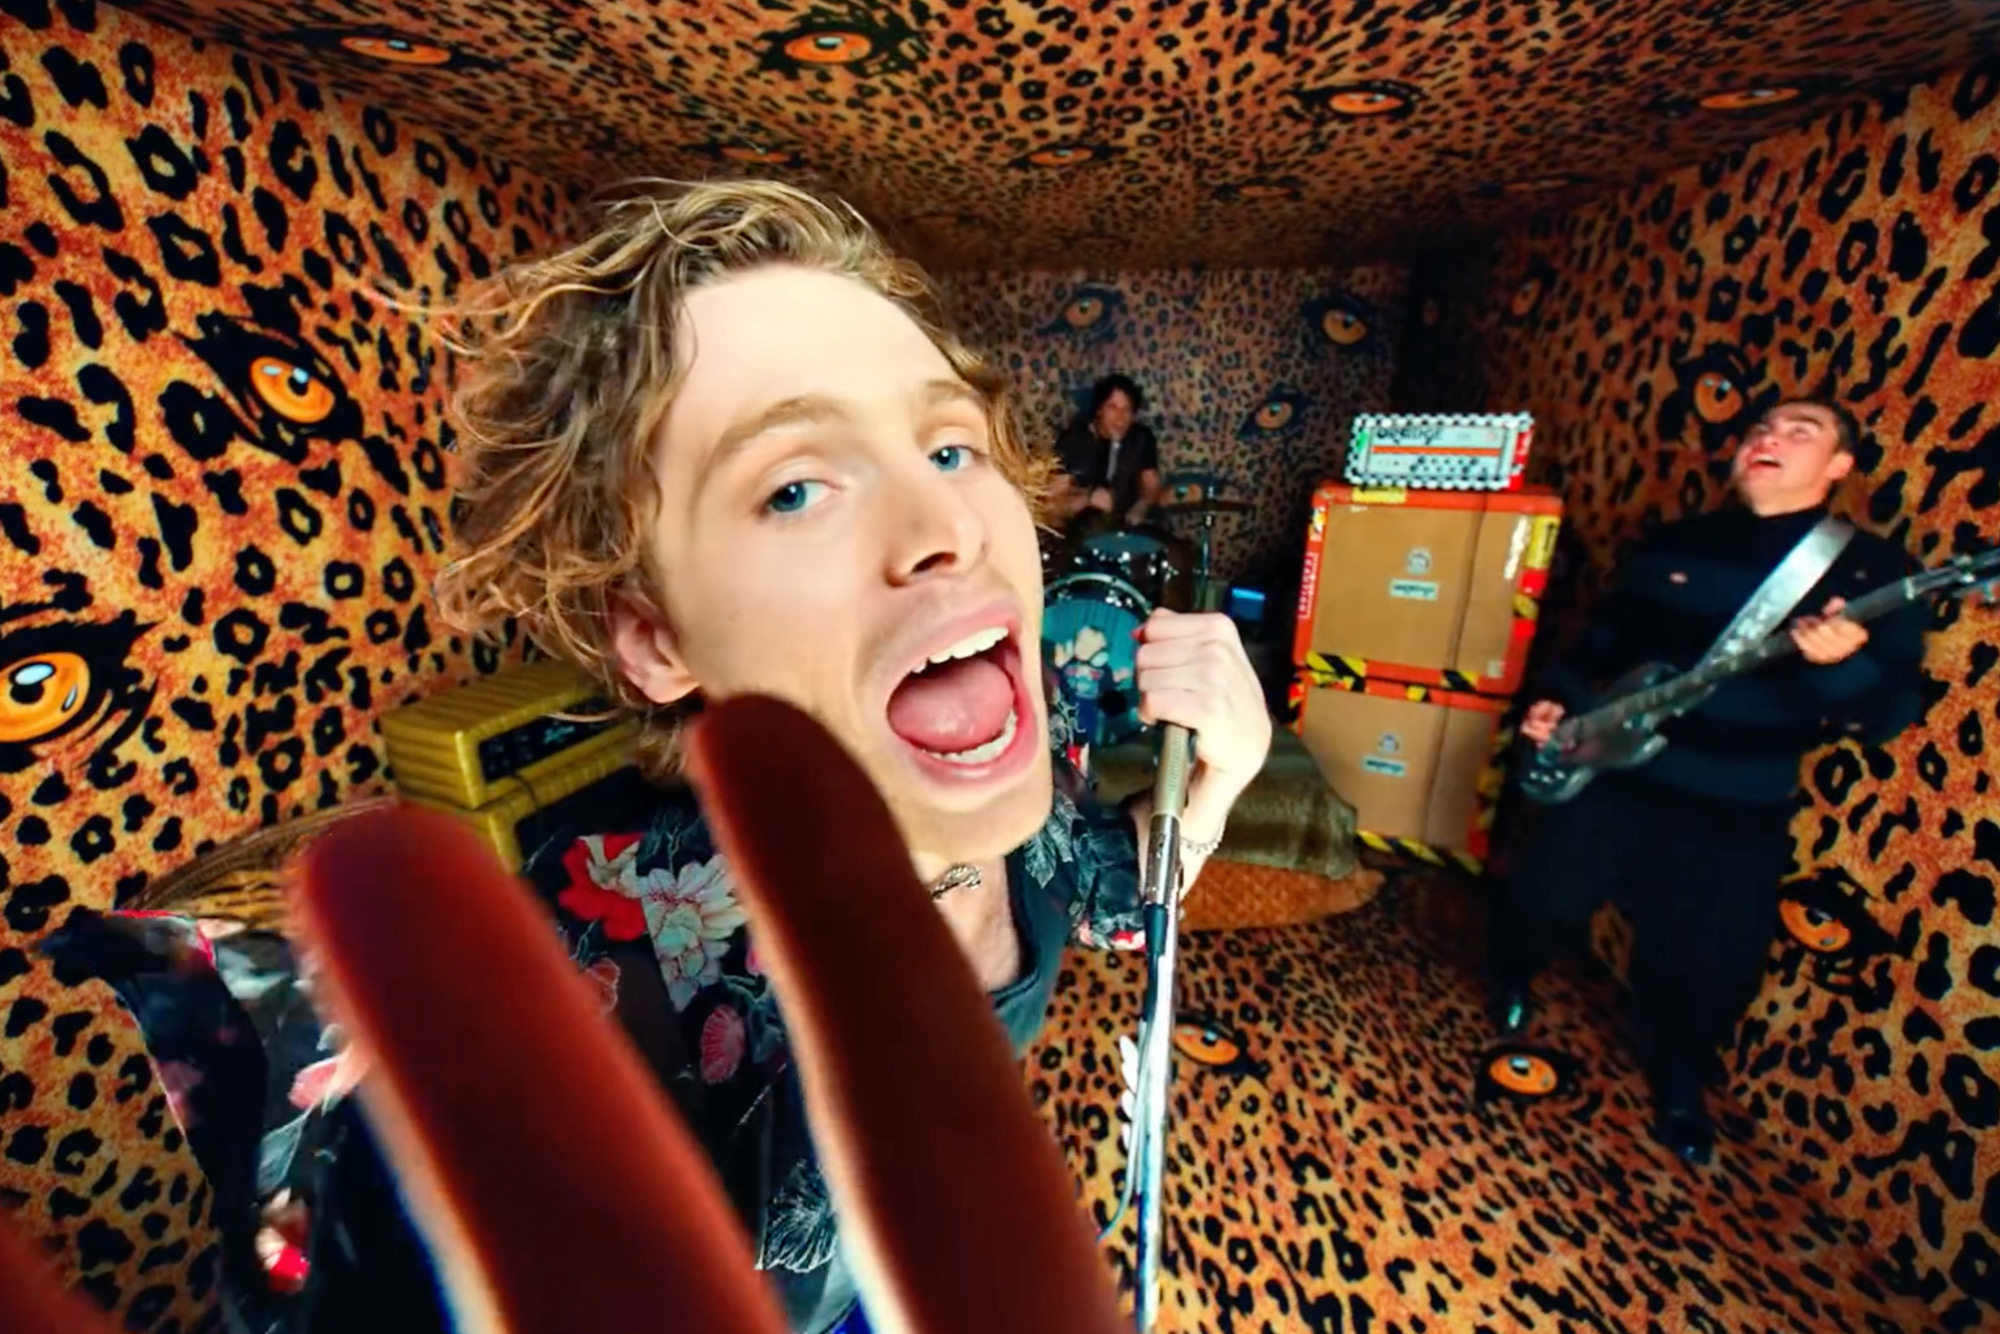 5 Seconds of Summer Feel 'No Shame' in New Video